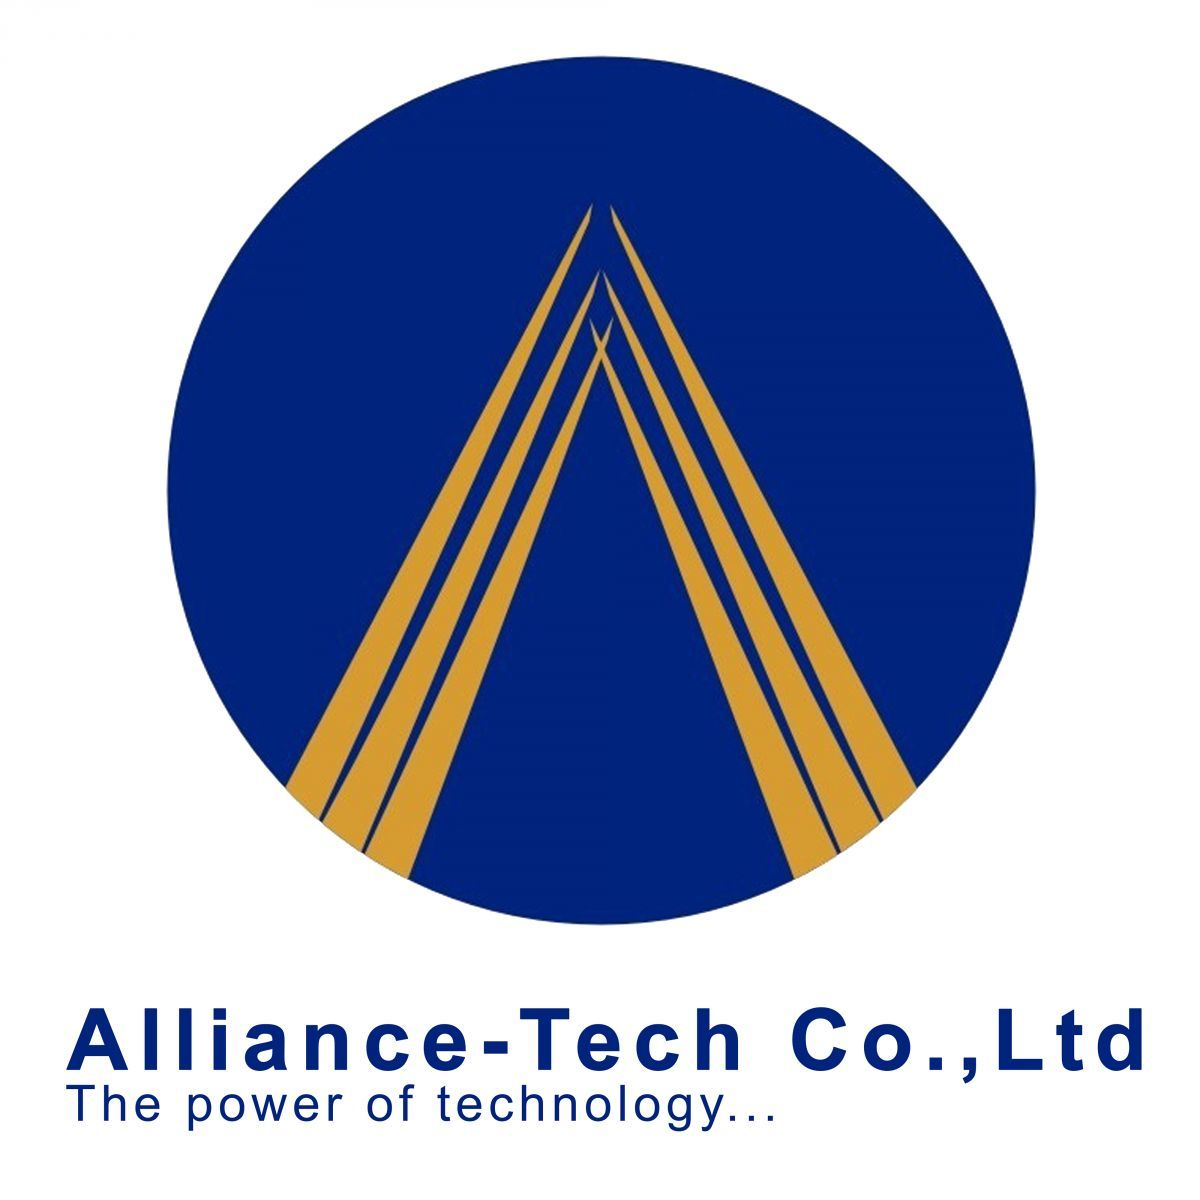 Alliance-Tech